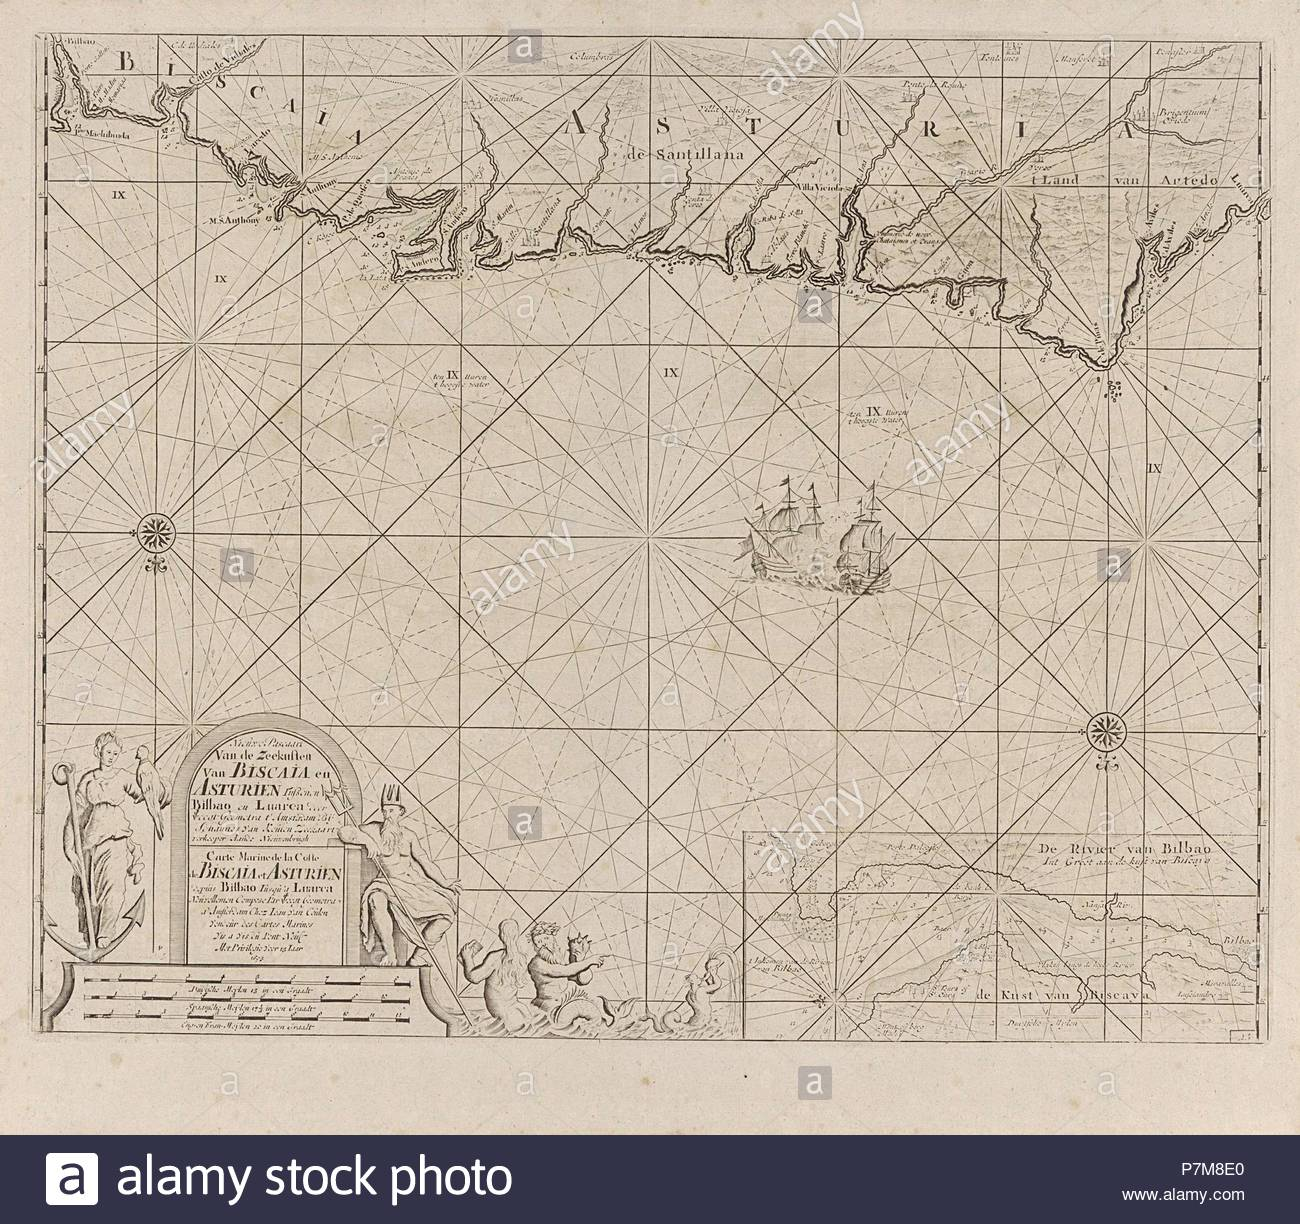 Sea chart of a portion of the Bay of Biscay in Bilbao, Anonymous, Claes Jansz Voogt, Johannes van Keulen (II), 1734 - 1803. - Stock Image